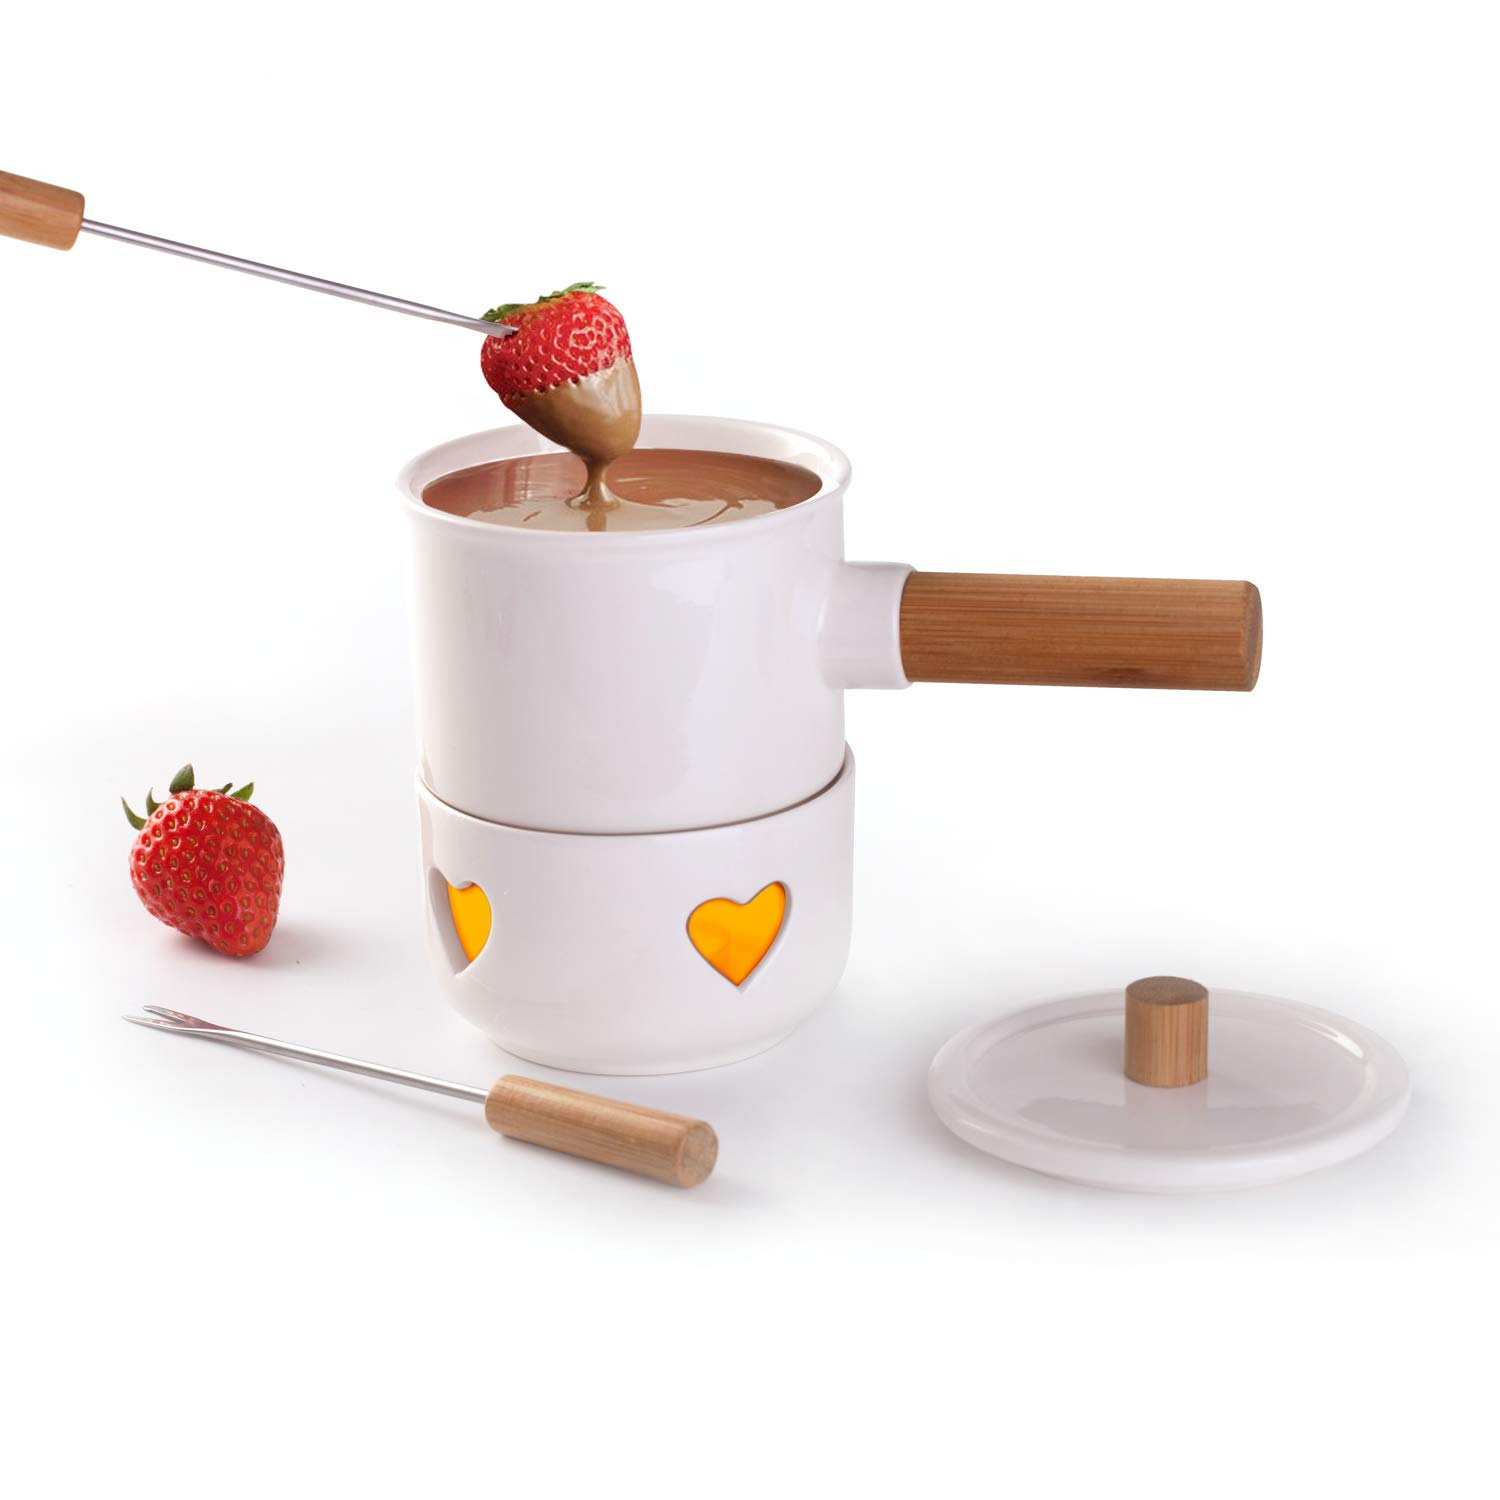 Sunbright Fondue Pot for Chocolate, Cheese - Ideal for Outdoor Party, Women Gifts by SUNBRIGHT